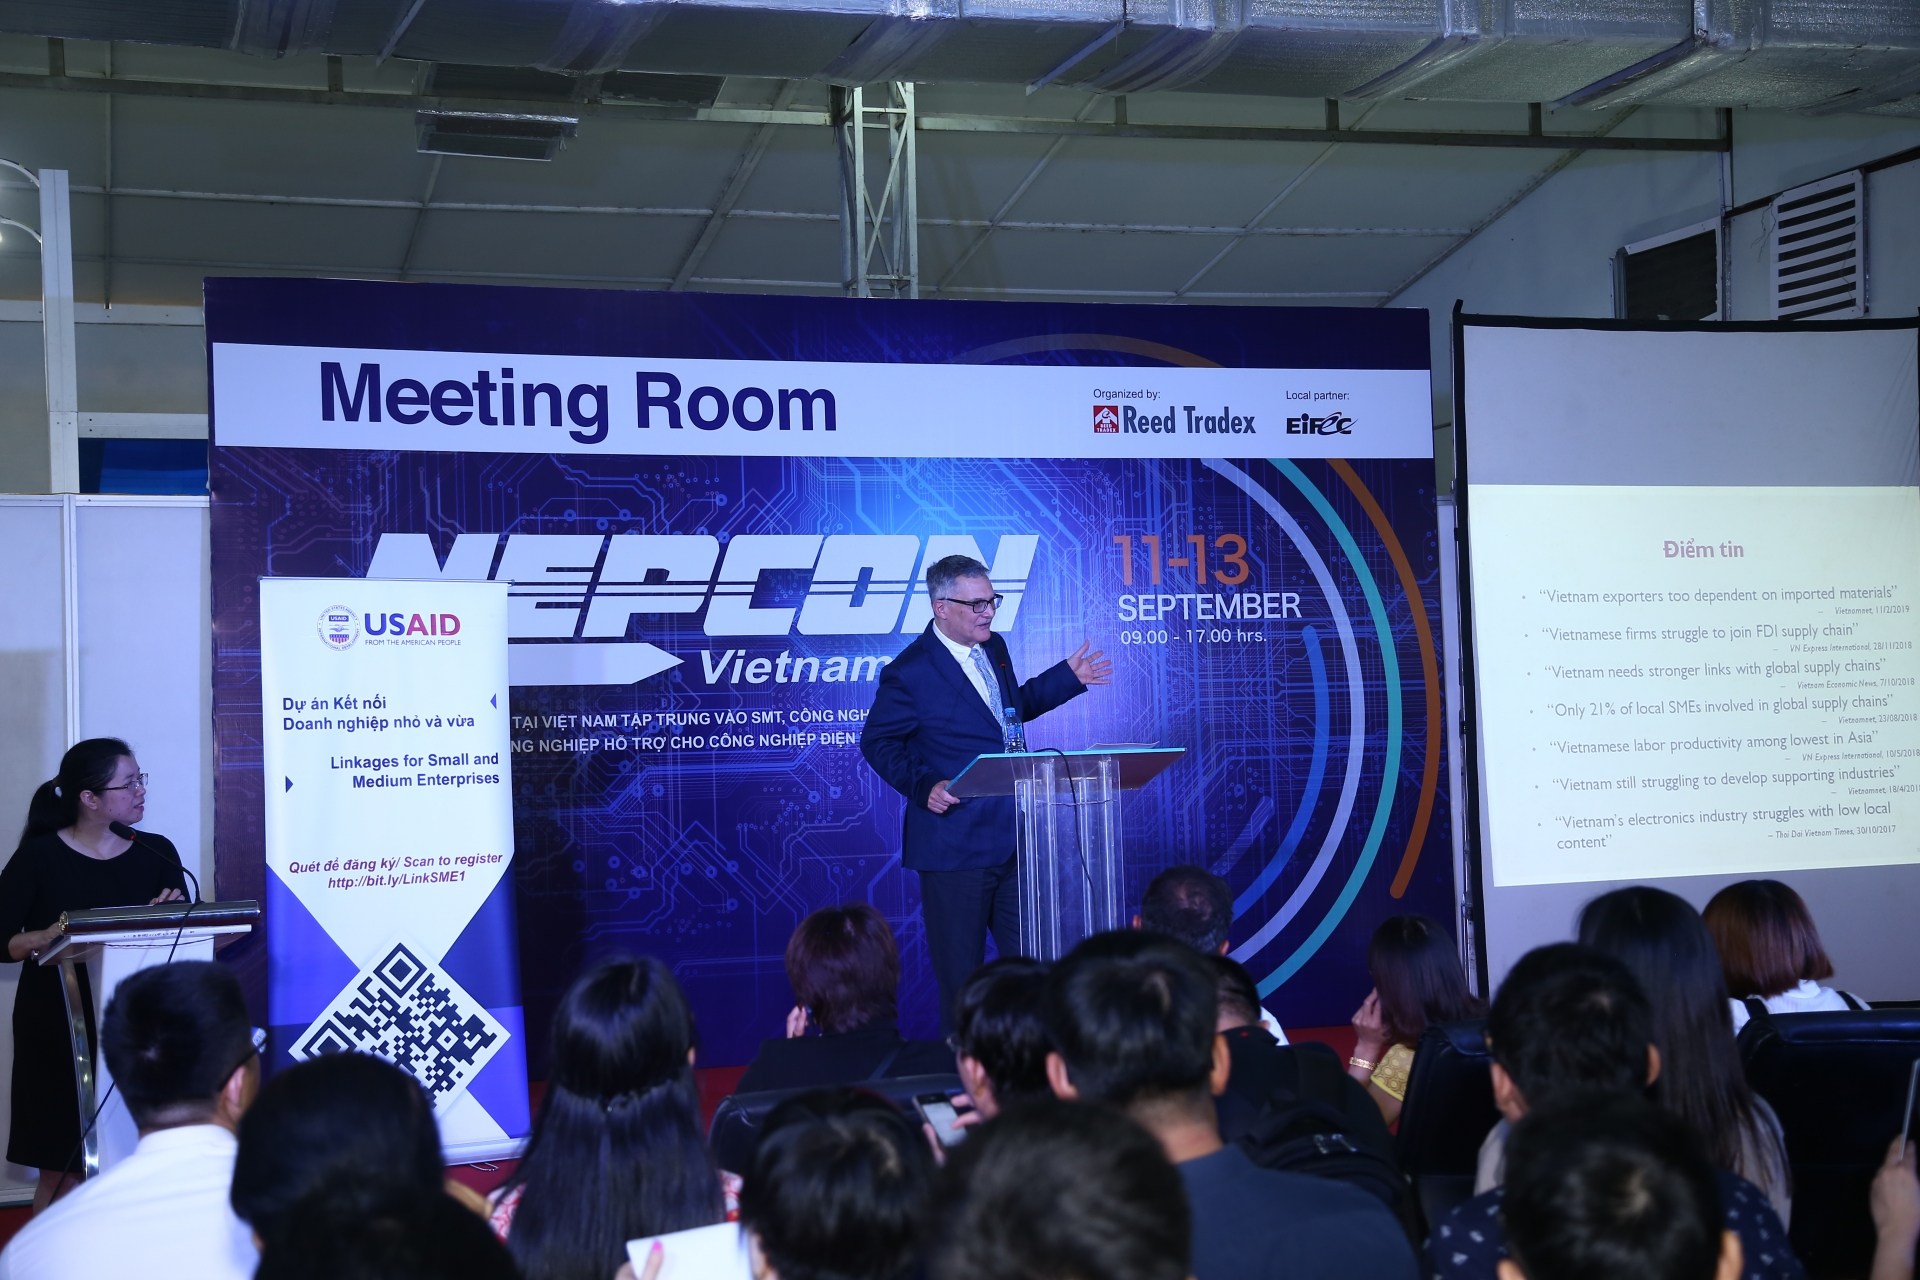 nepcon vietnam 2019 great chance for smes to join global supply chains